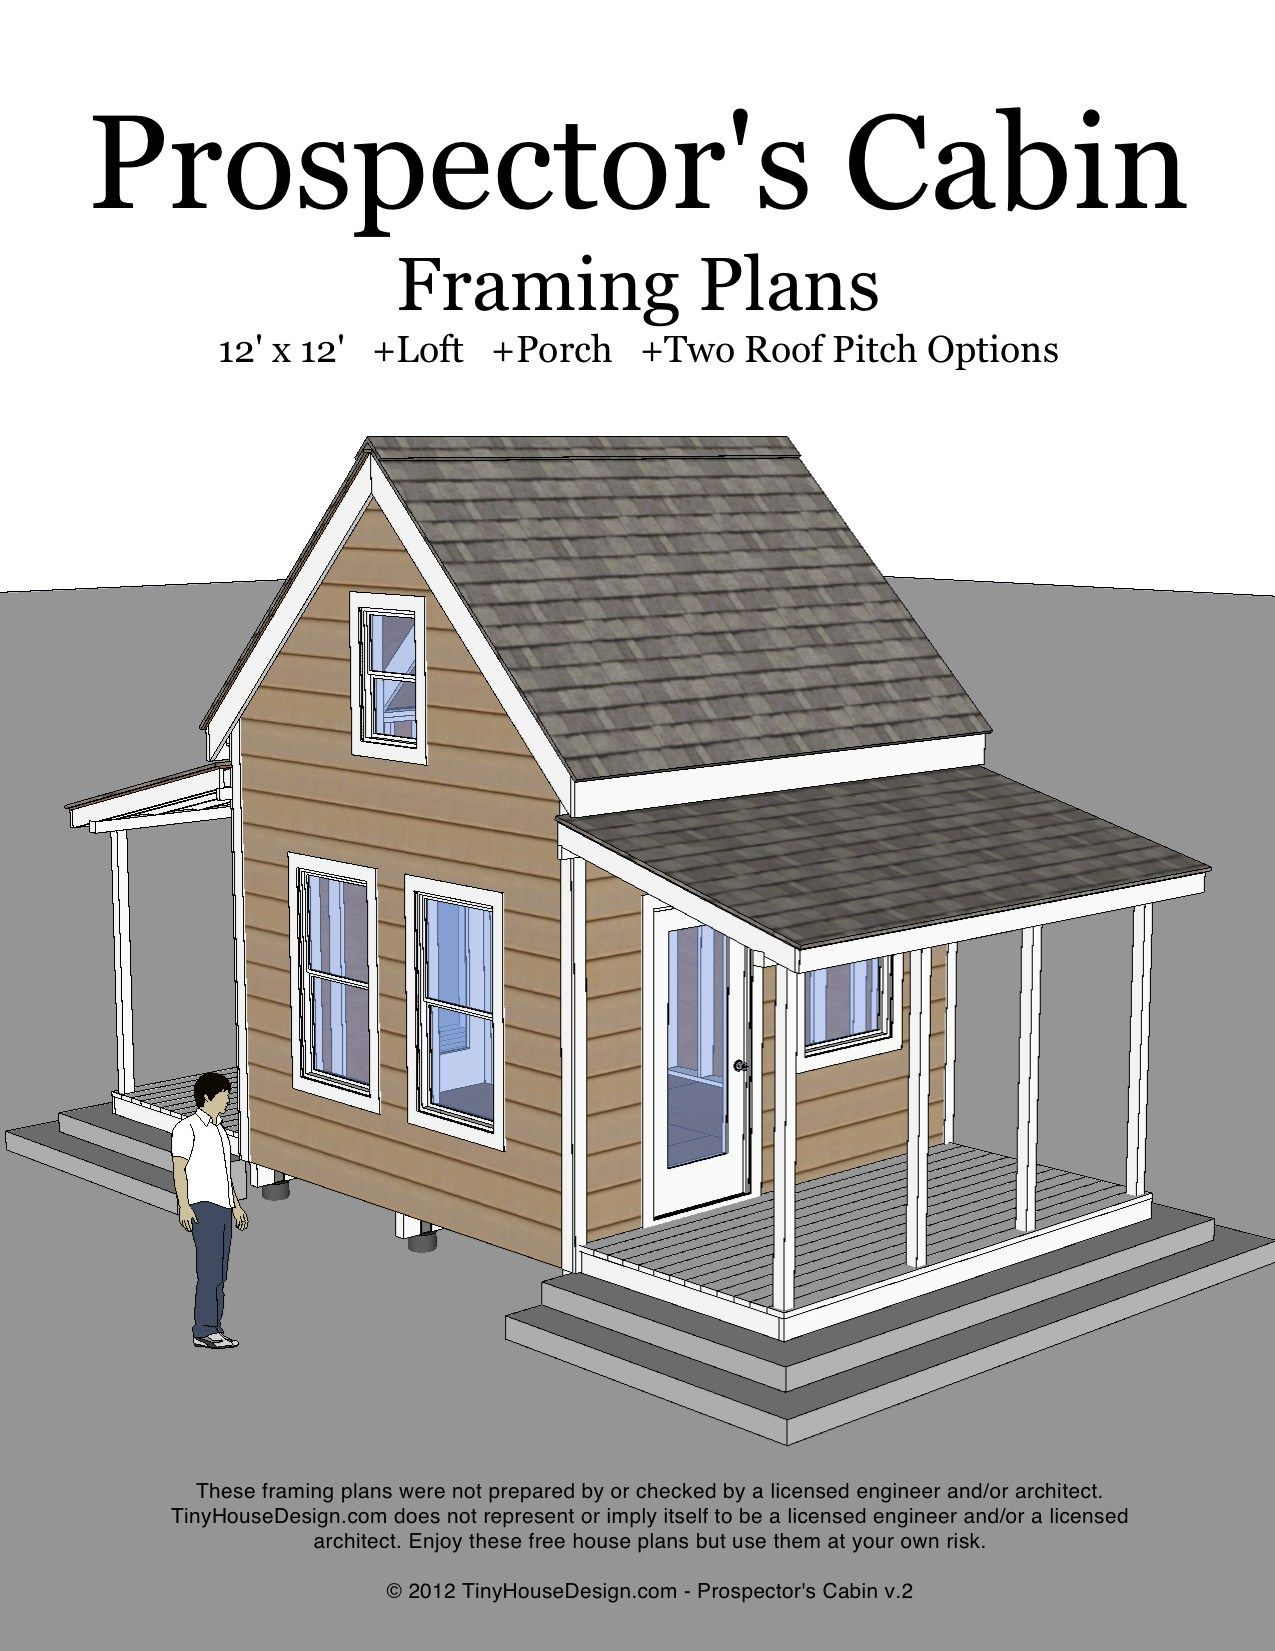 Prospector S Cabin V 2 12 X12 Loft Front Back Porch 8 12 12 12 Roof Pitch Pdf Format 47 Pages 9 9 Free House Plans Tiny House Plans Tiny House Design